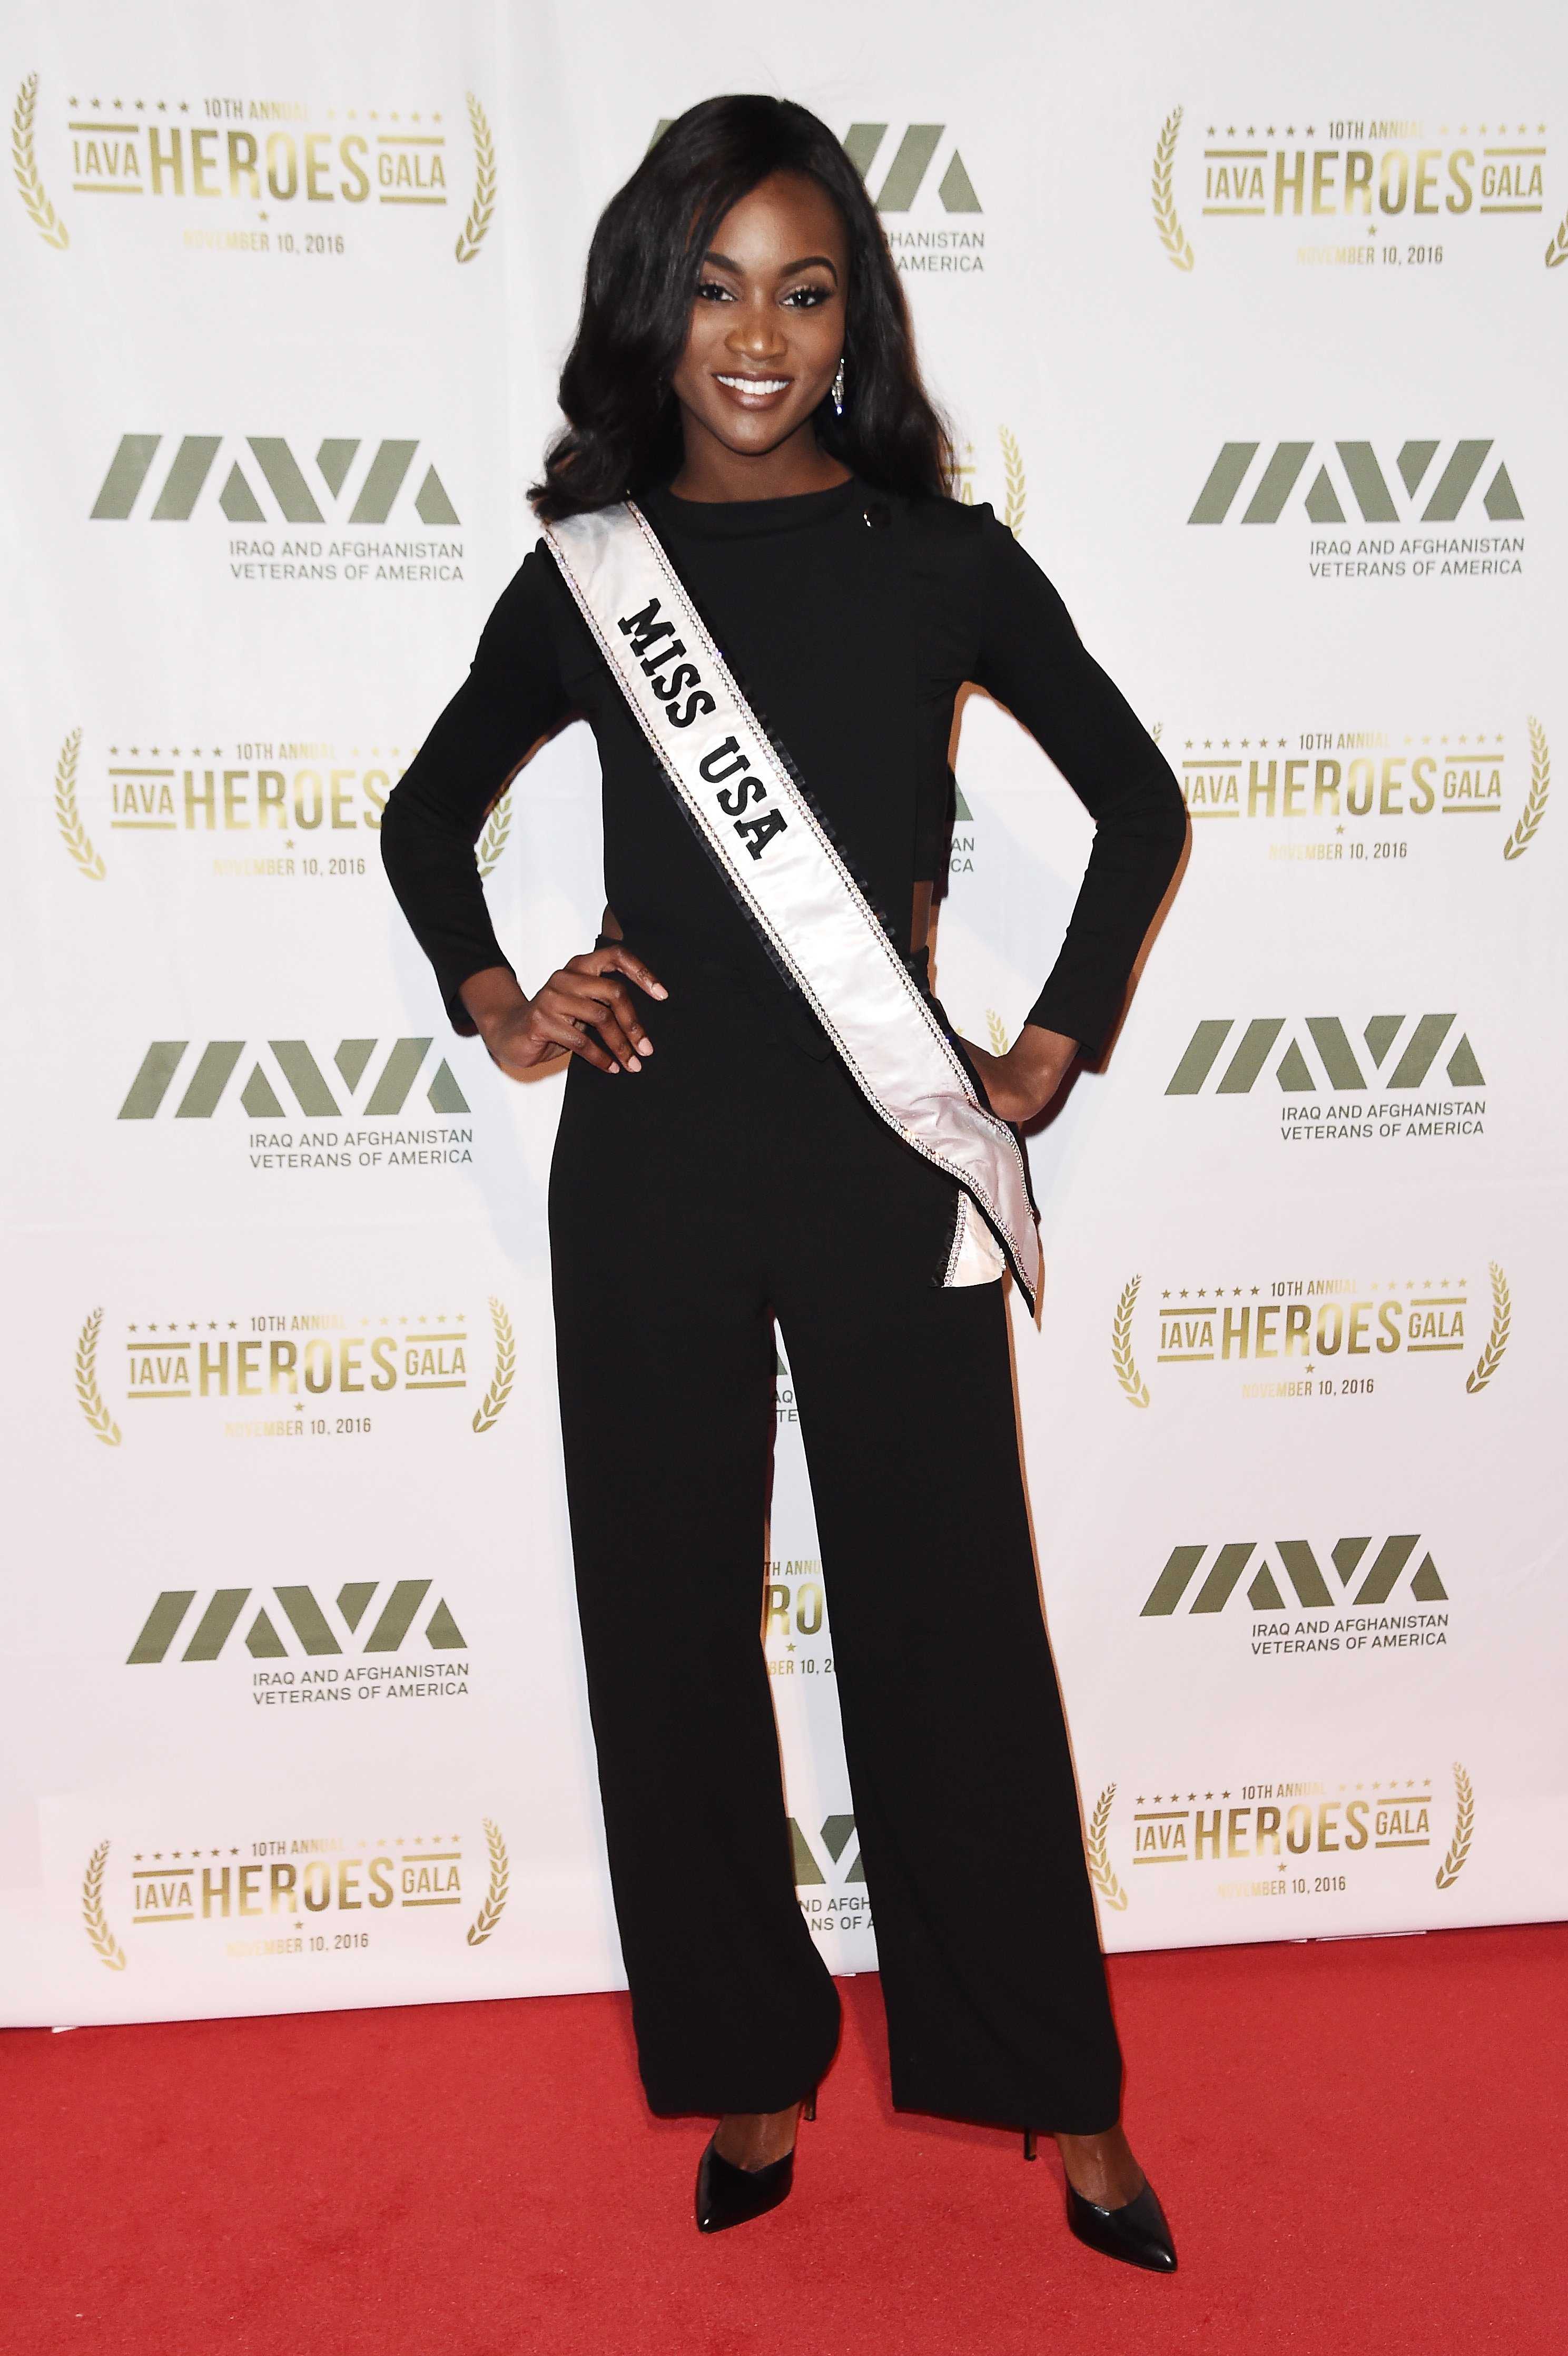 Miss USA 2016 Deshauna Barber attends the 2016 IAVA Heroes Gala at Cipriani 42nd Street on November 10, 2016 in New York City